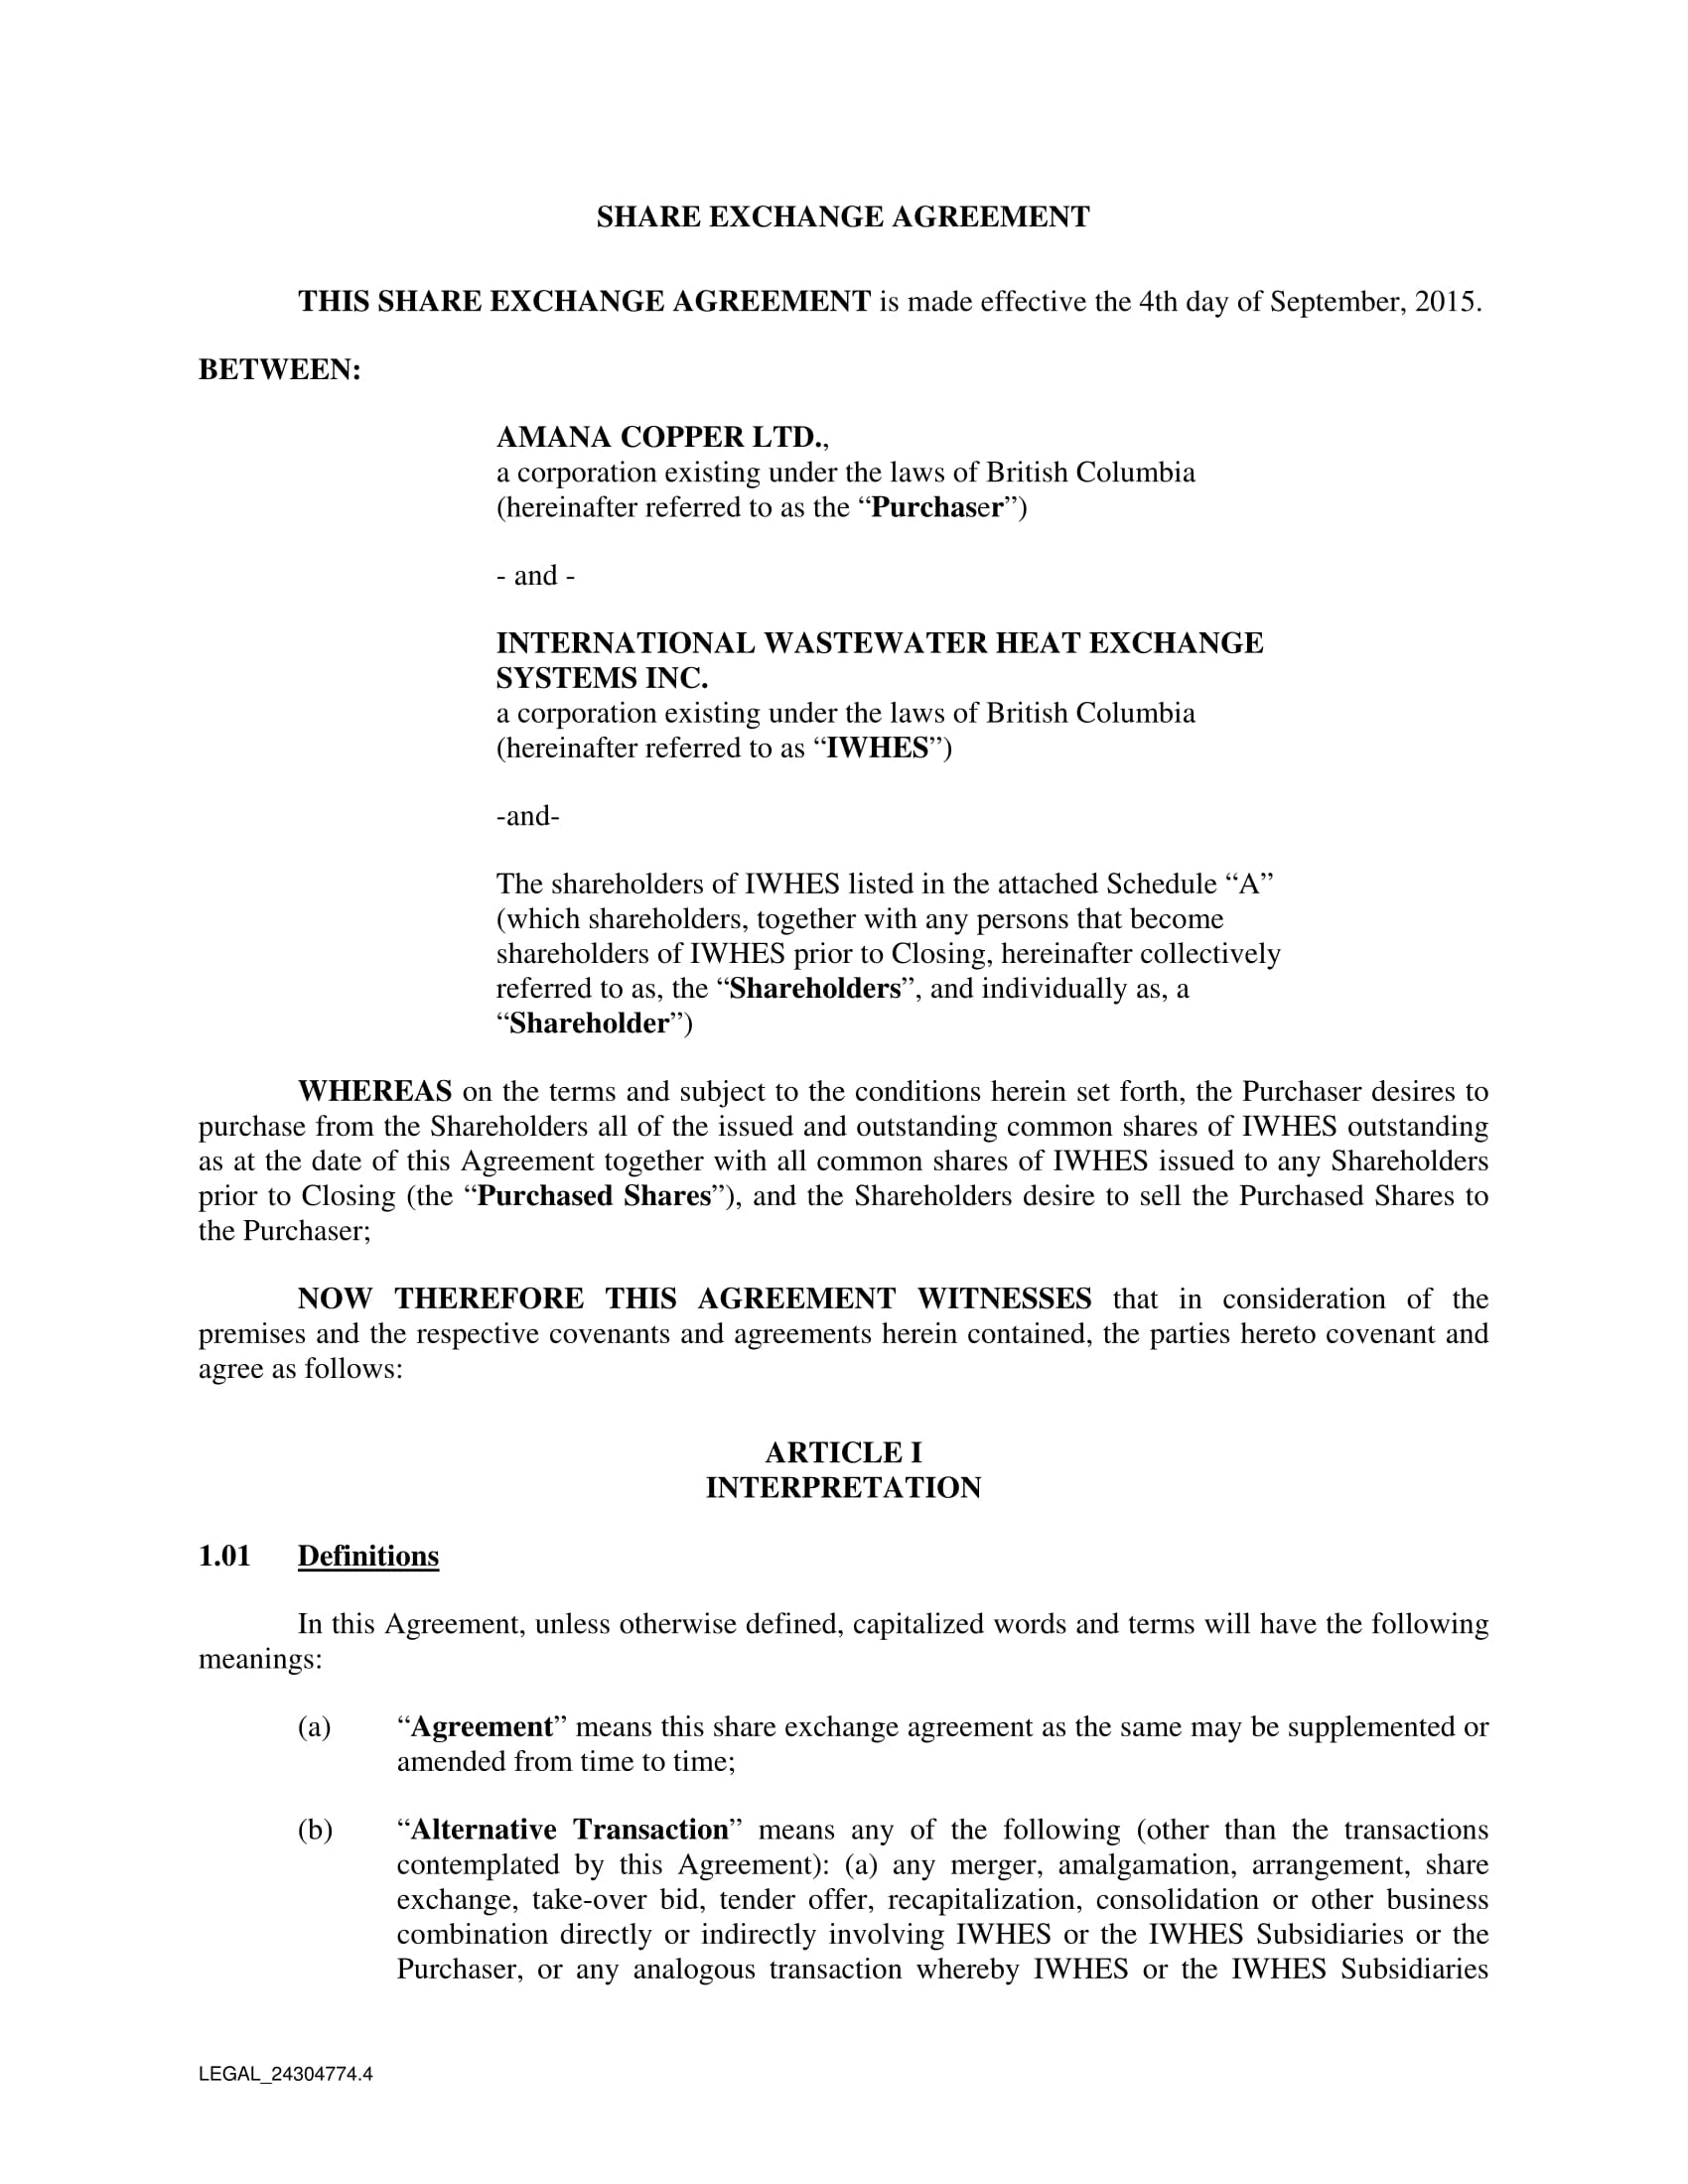 share exchange agreement form 01